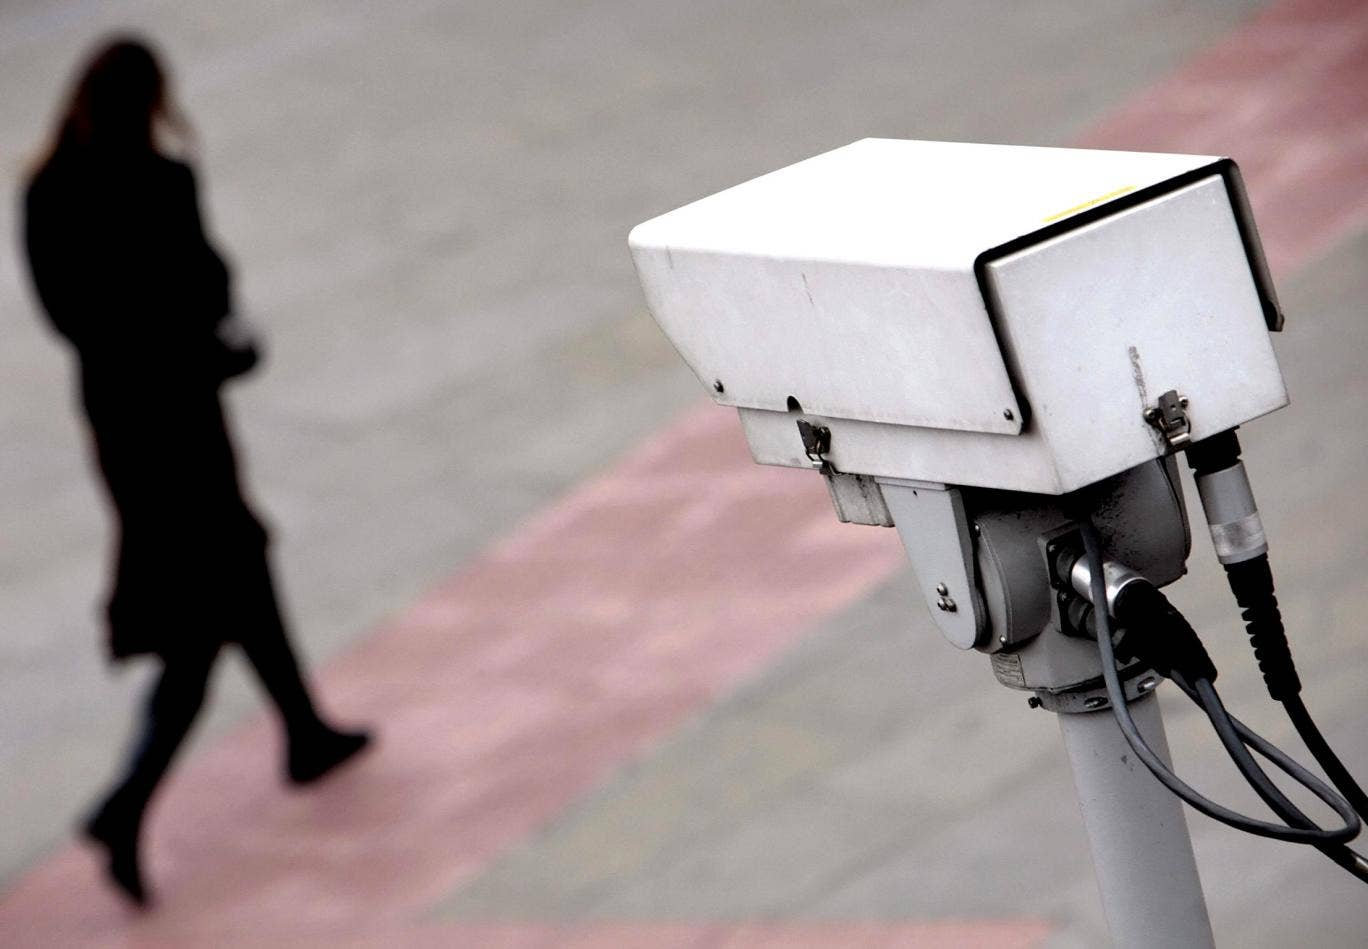 The Government's first Surveillance Commissioner, Andrew Rennison, has said there's a worrying lack of regulation over how CCTV is used